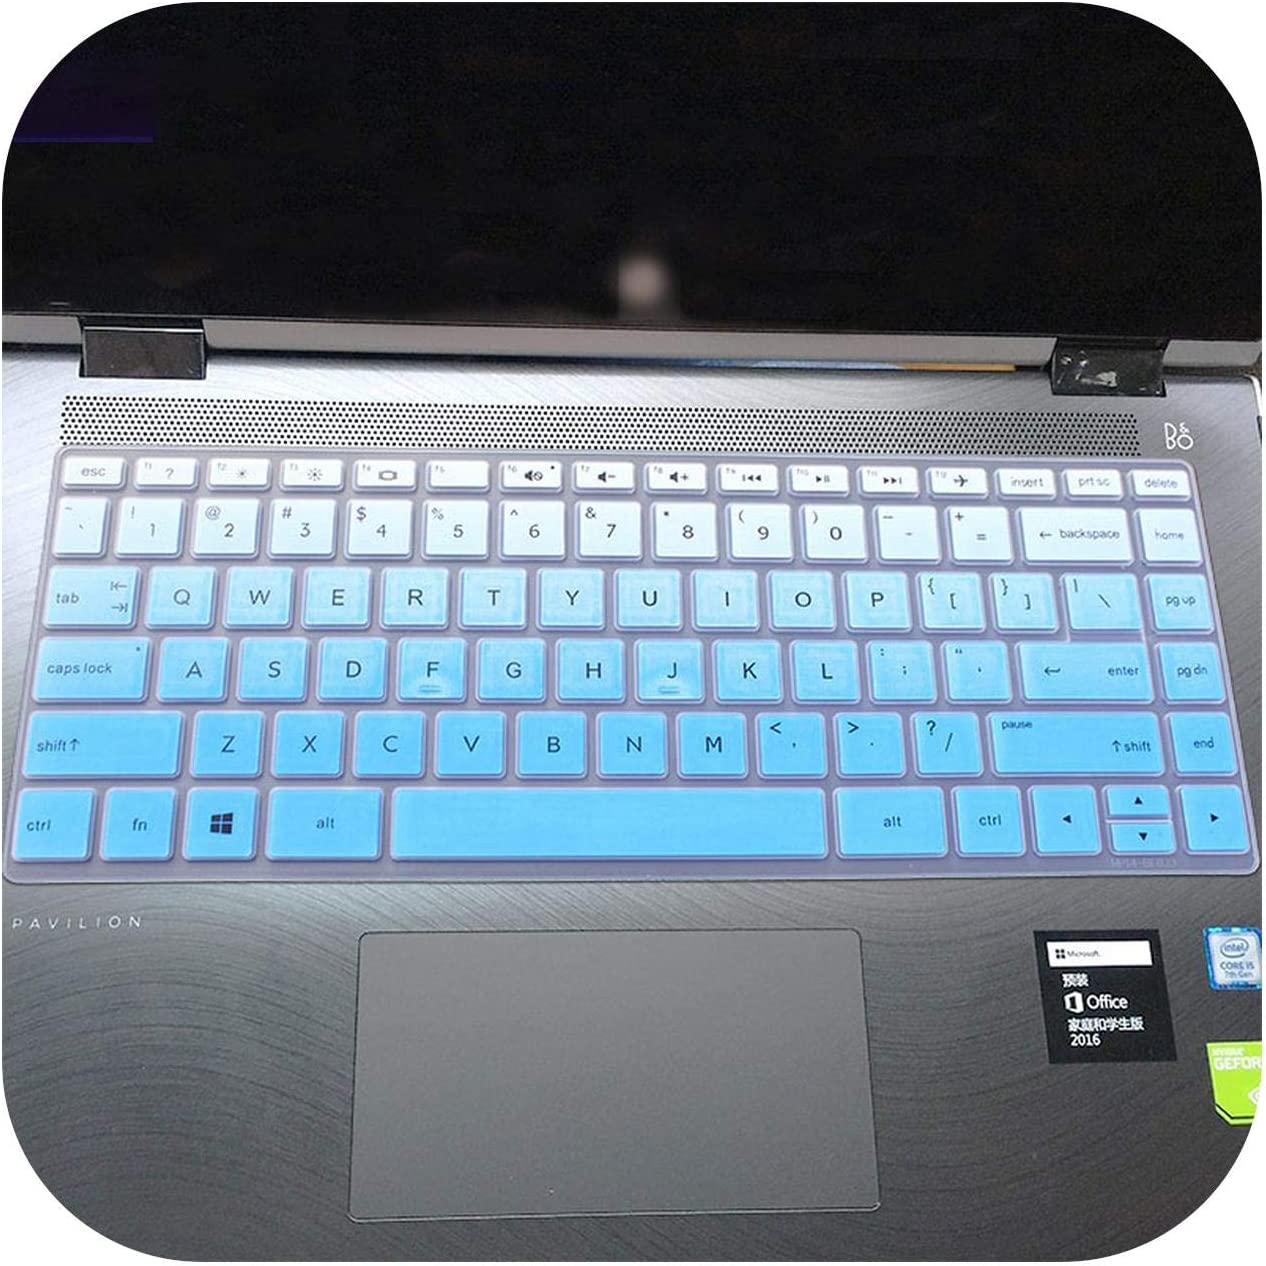 for HP Pavilion X360 14 cd0213nb 14 cd0003ne 14 cd0002ne 14 cd00073tx cd0021tx 14 14 cd Series Laptop Keyboard Cover Protector-Rainbow